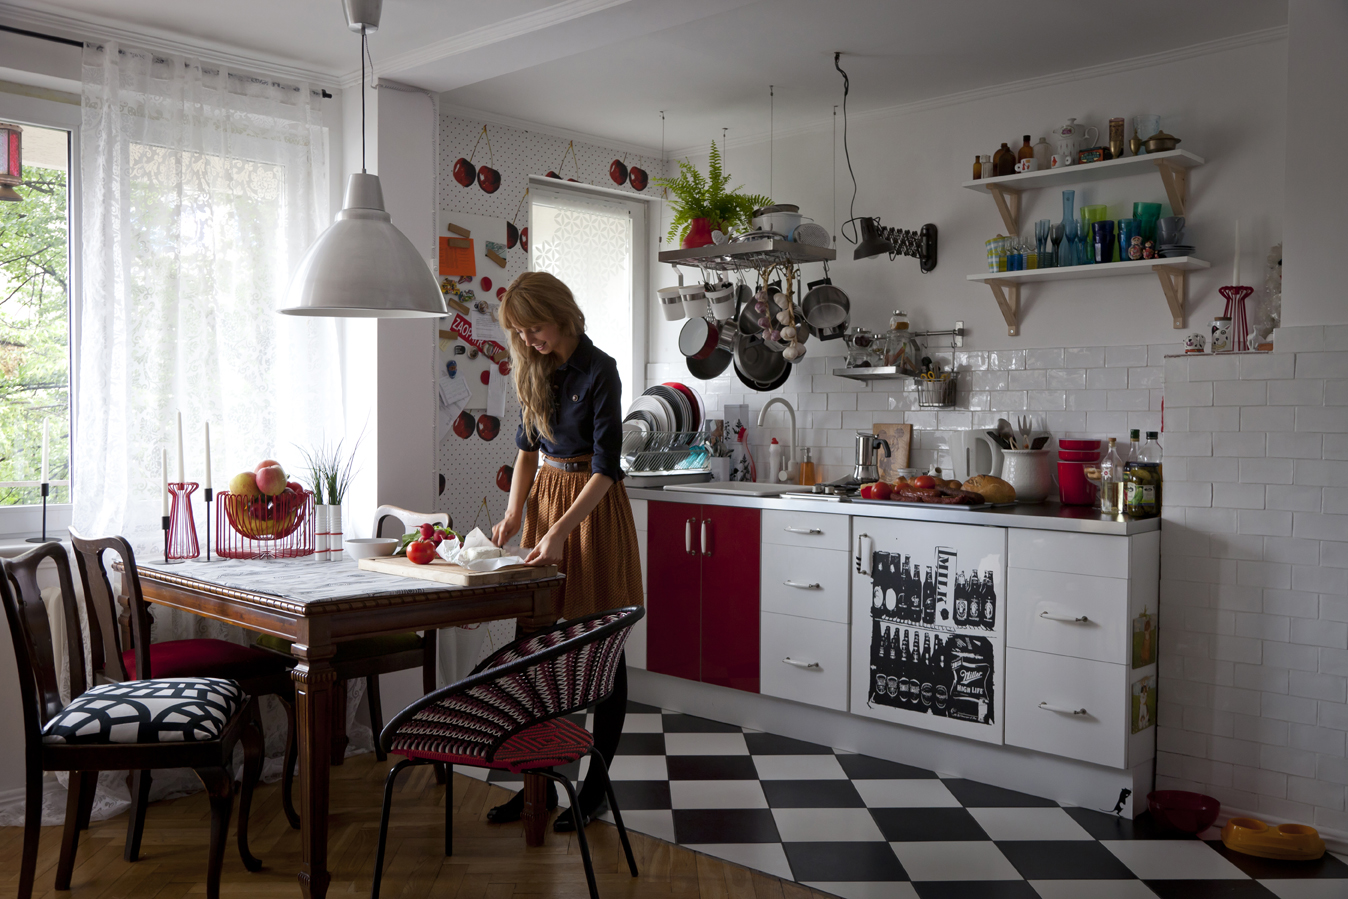 kitchen-retro-kitchen-diner